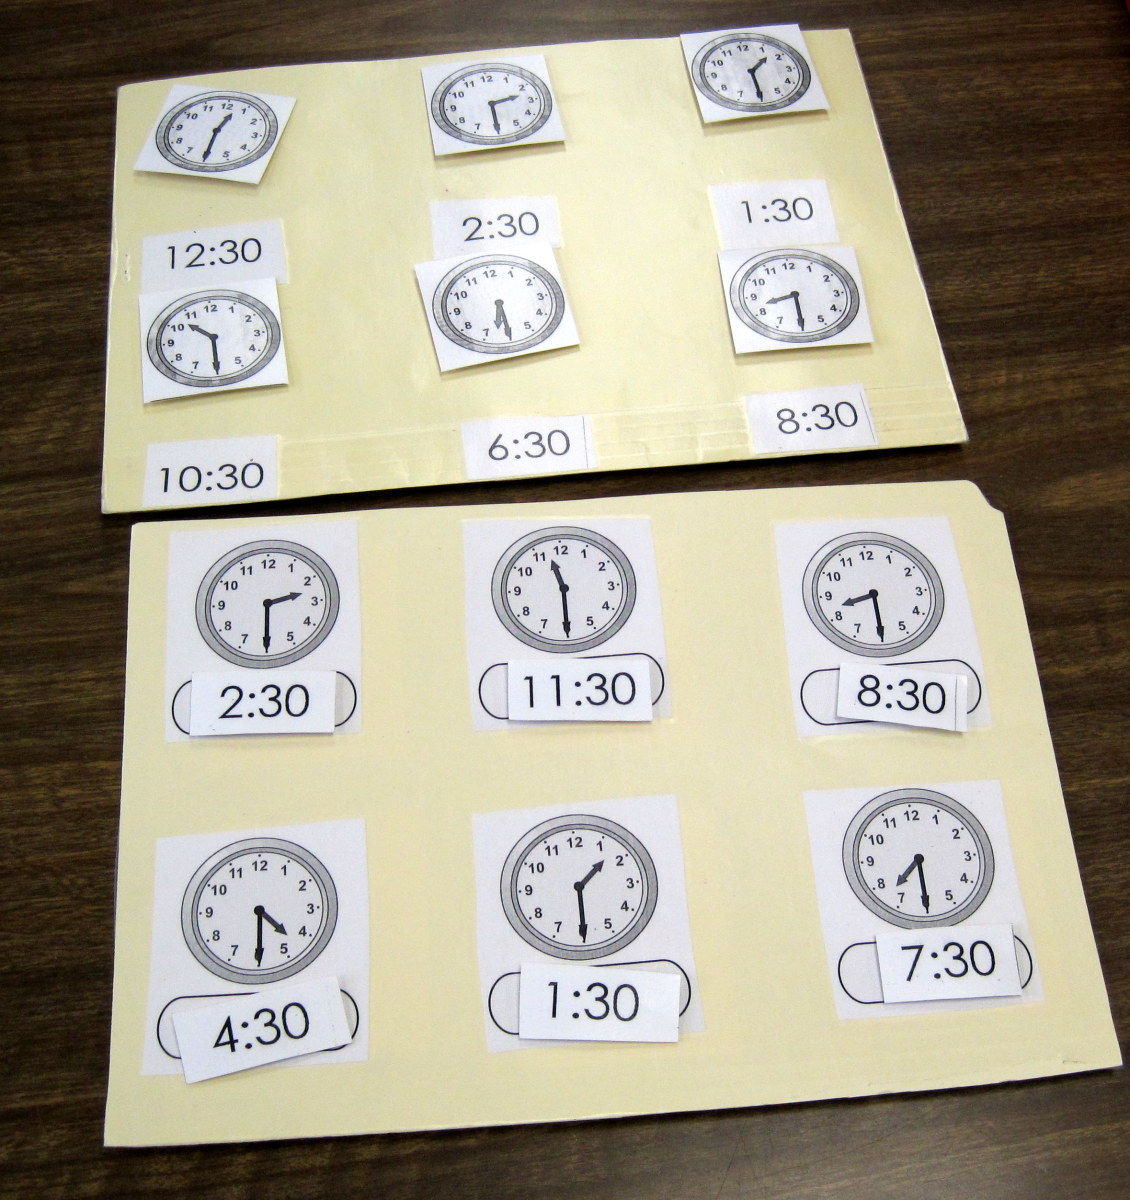 k-4-telling-time-clock-teaching-materials-with-velcro